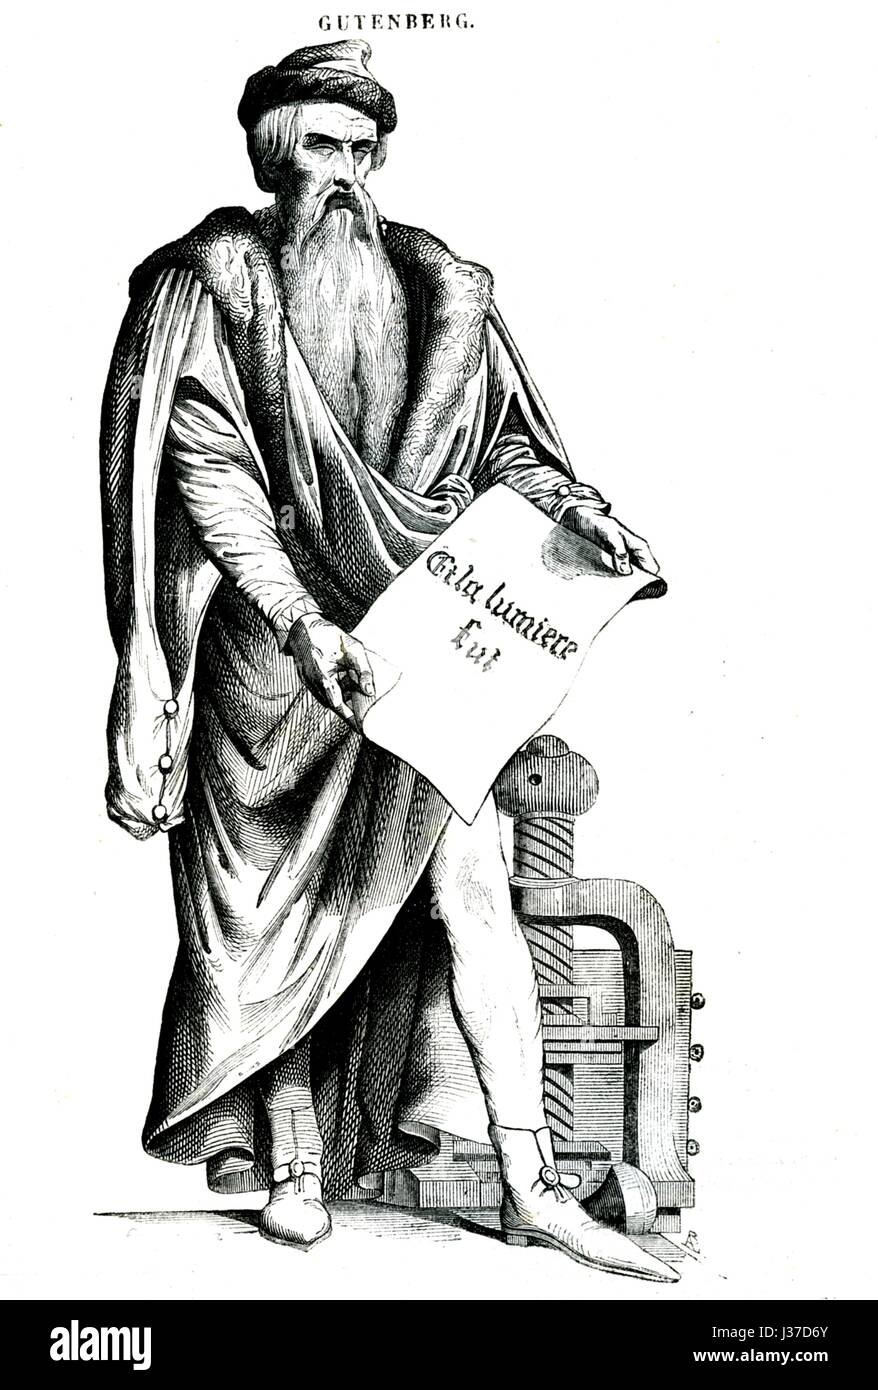 German Printer Stock Photos Images Alamy Johannes Gutenberg Printing Press Diagram 1400 1468 During The Renaissance And Inventor